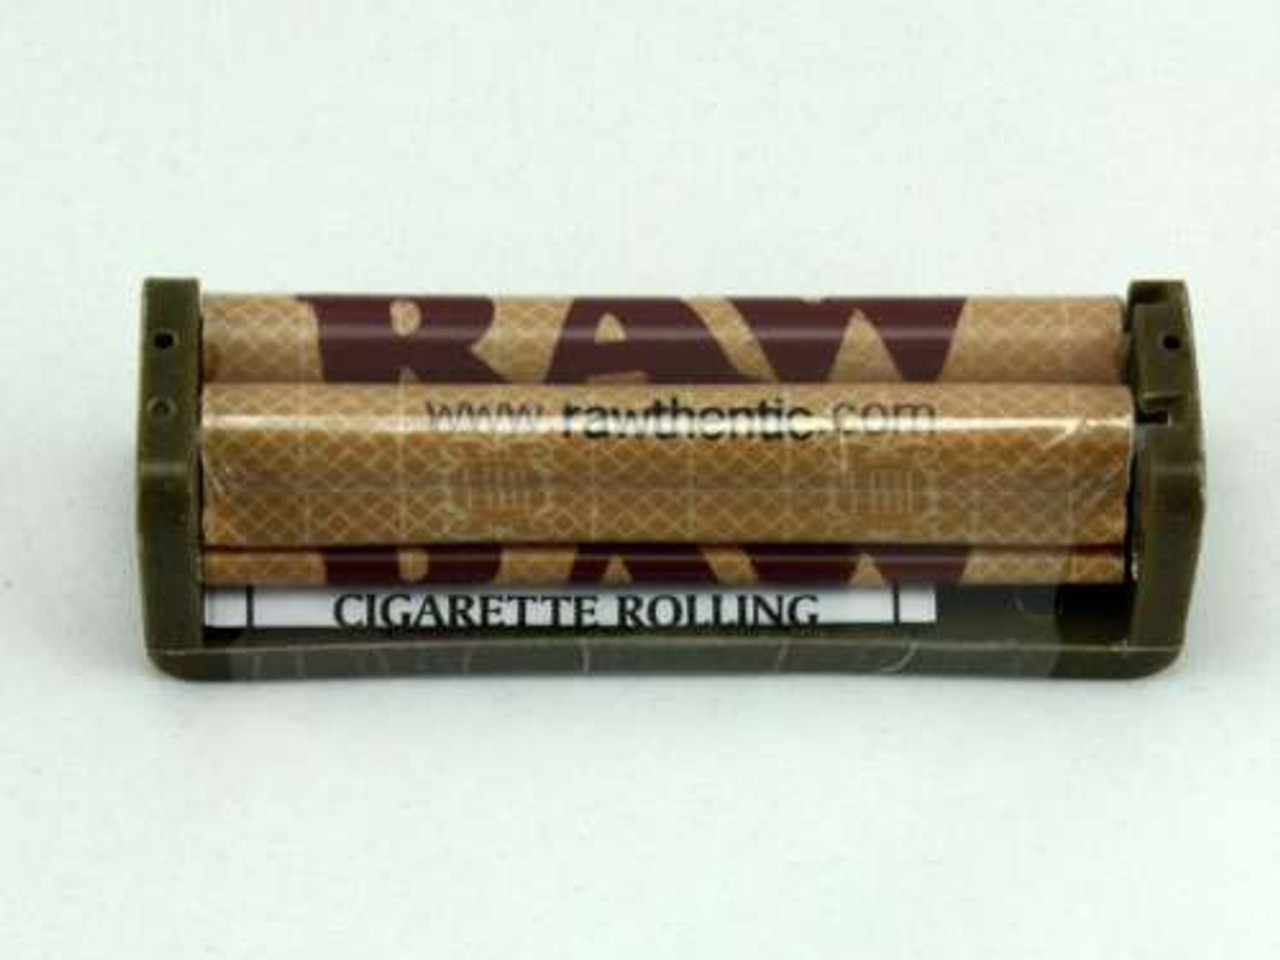 RAW 79mm Cigarette Roller